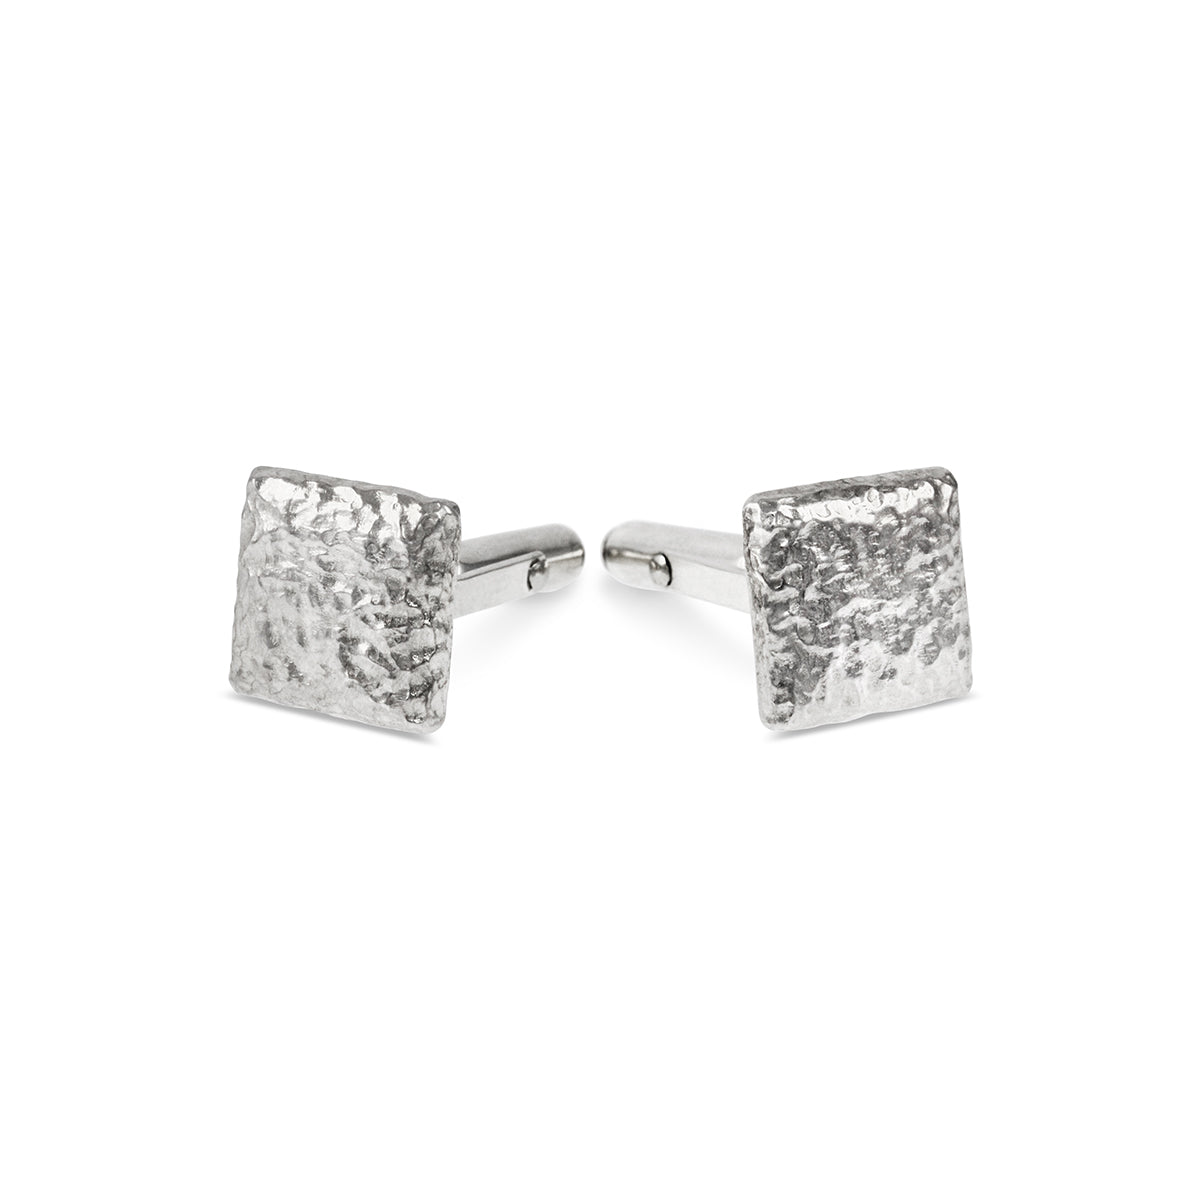 Planar cufflinks in sterling silver